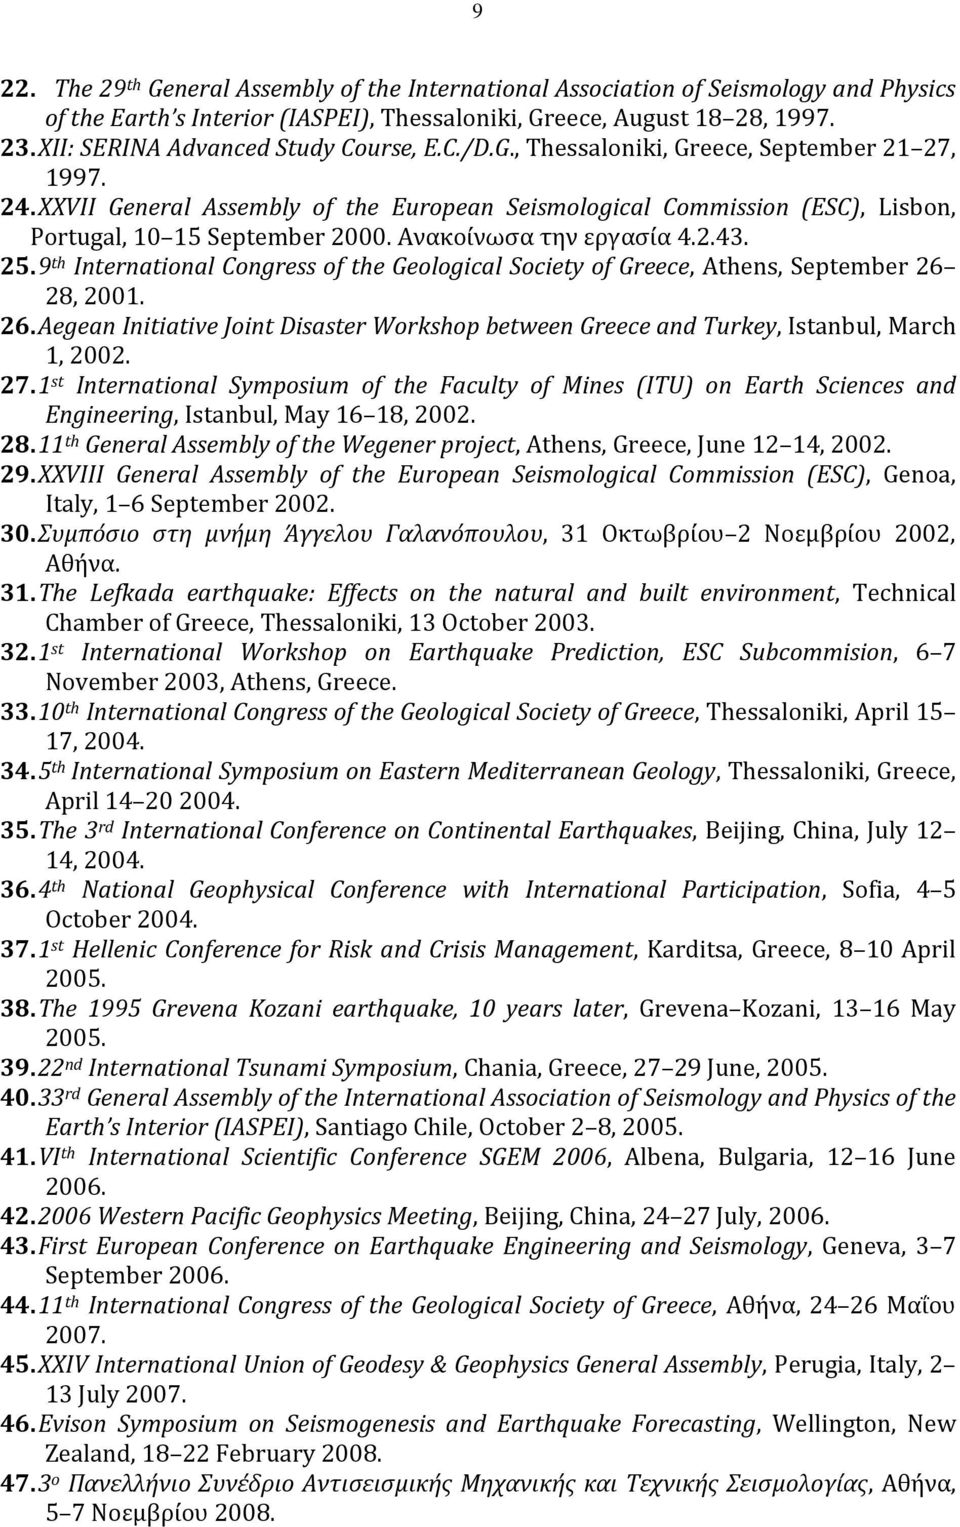 XXVII General Assembly of the European Seismological Commission (ESC), Lisbon, Portugal, 10 15 September 2000. Ανακοίνωσα την εργασία 4.2.43. 25.